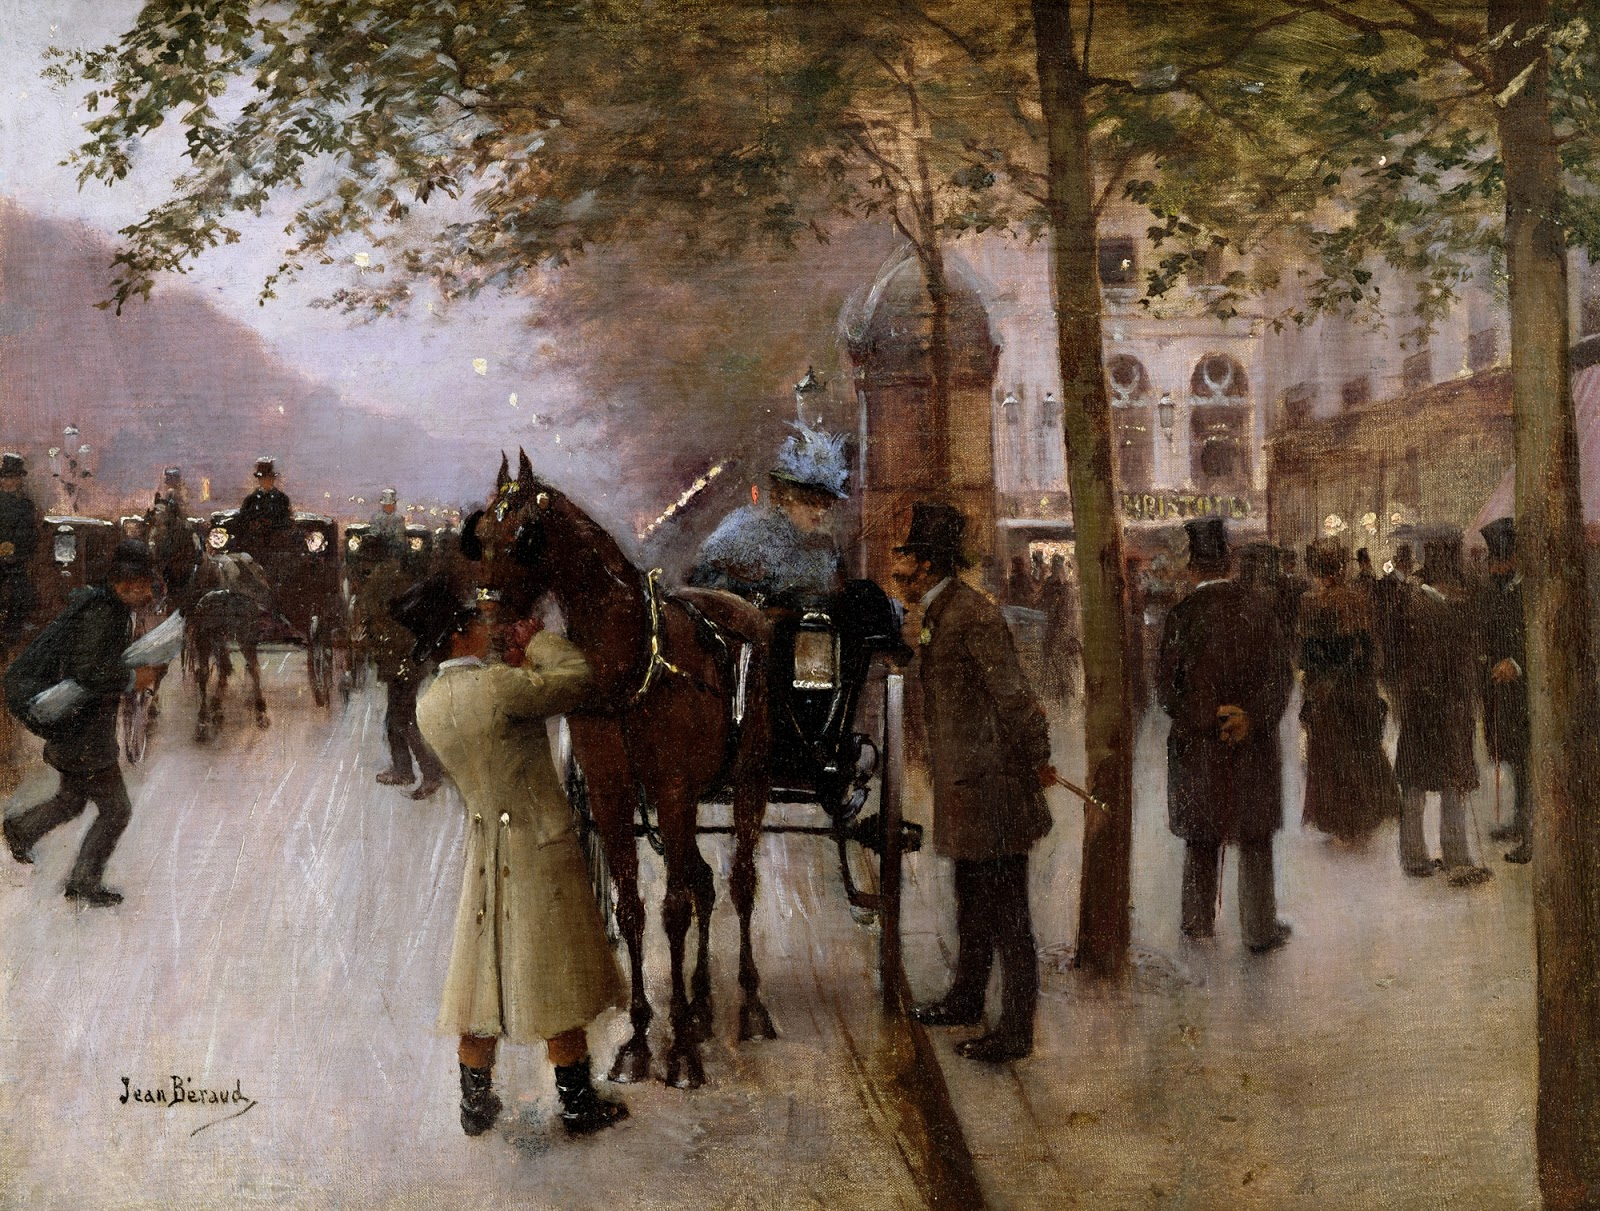 Jean    C Araud  The   oulevards C  Evening  in  Front  of  the  Cafe  Napolitain